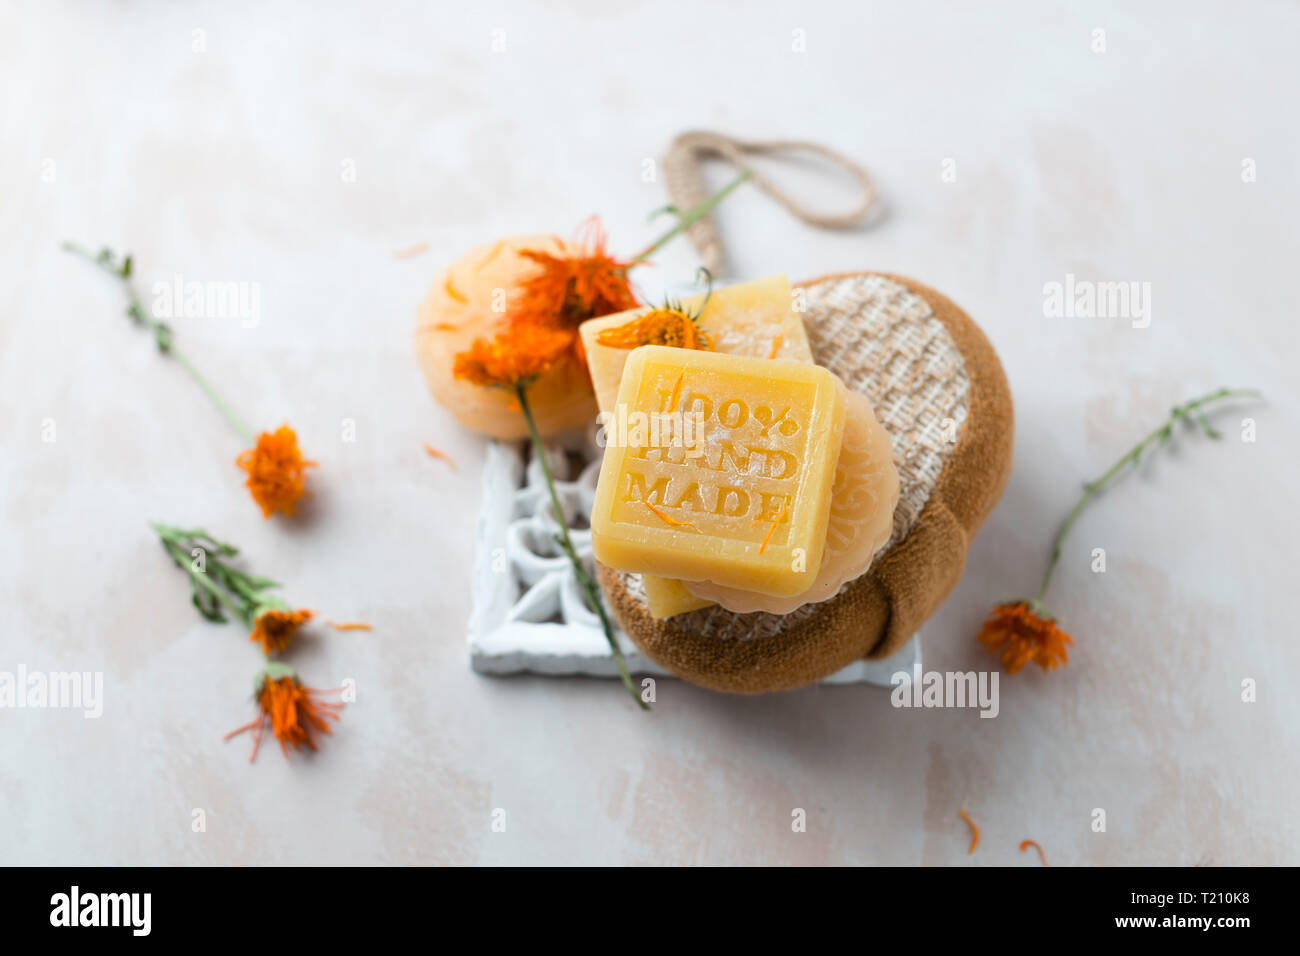 Various glycerin soaps - Stock Image